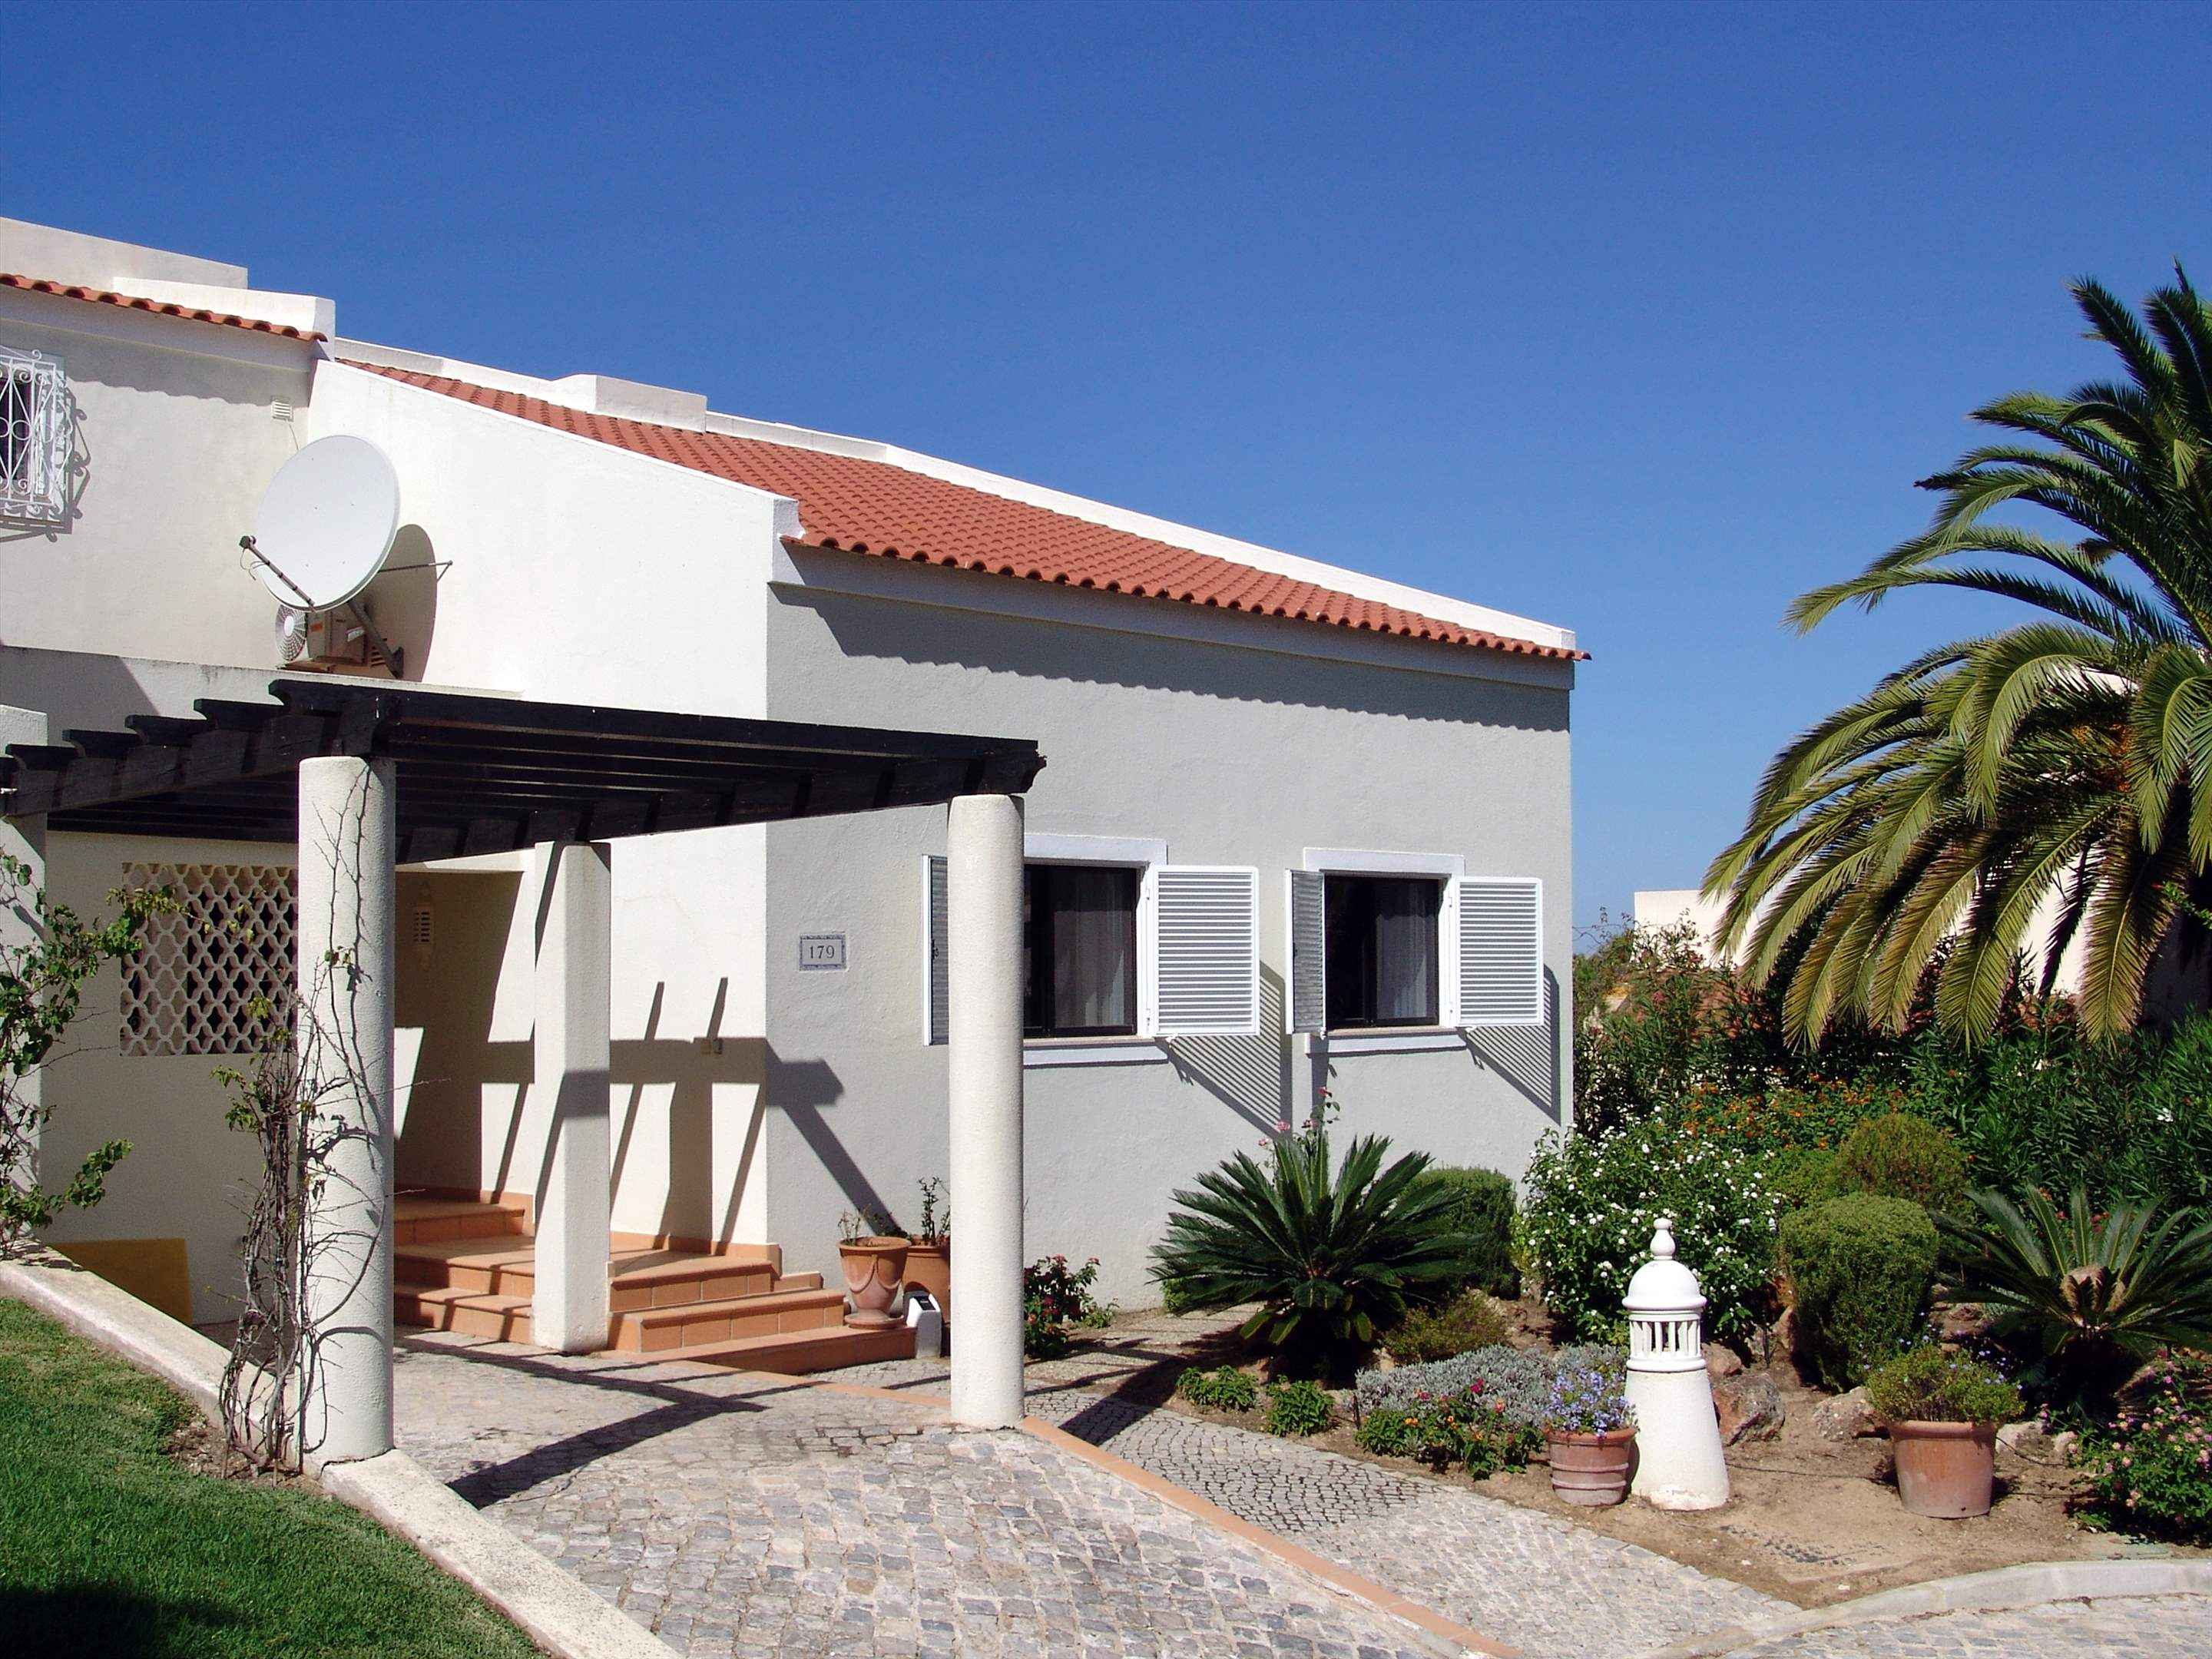 Villa Cascata, 4 Bedroom, 4 bedroom villa in Vale do Lobo, Algarve Photo #18